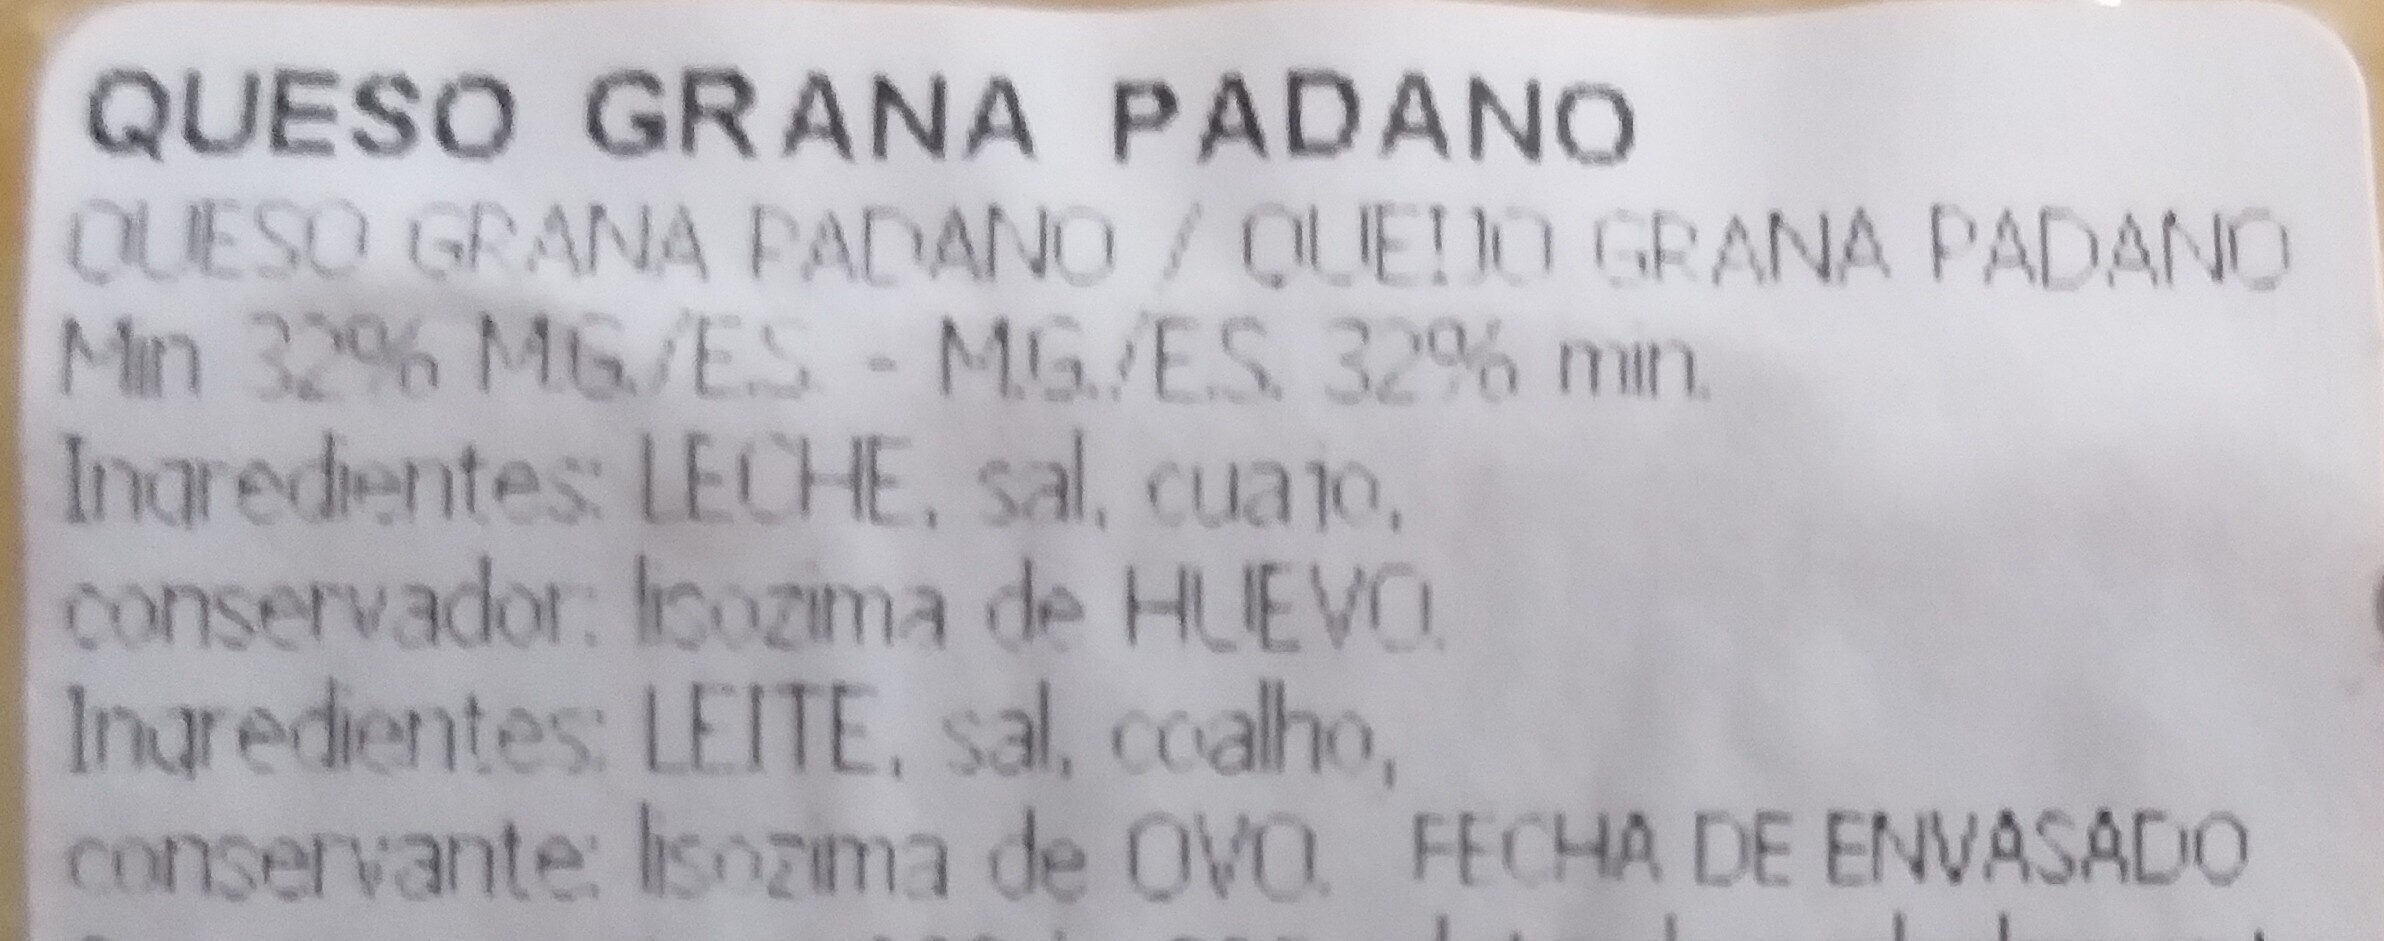 GRANA PADANO - Ingredients - es